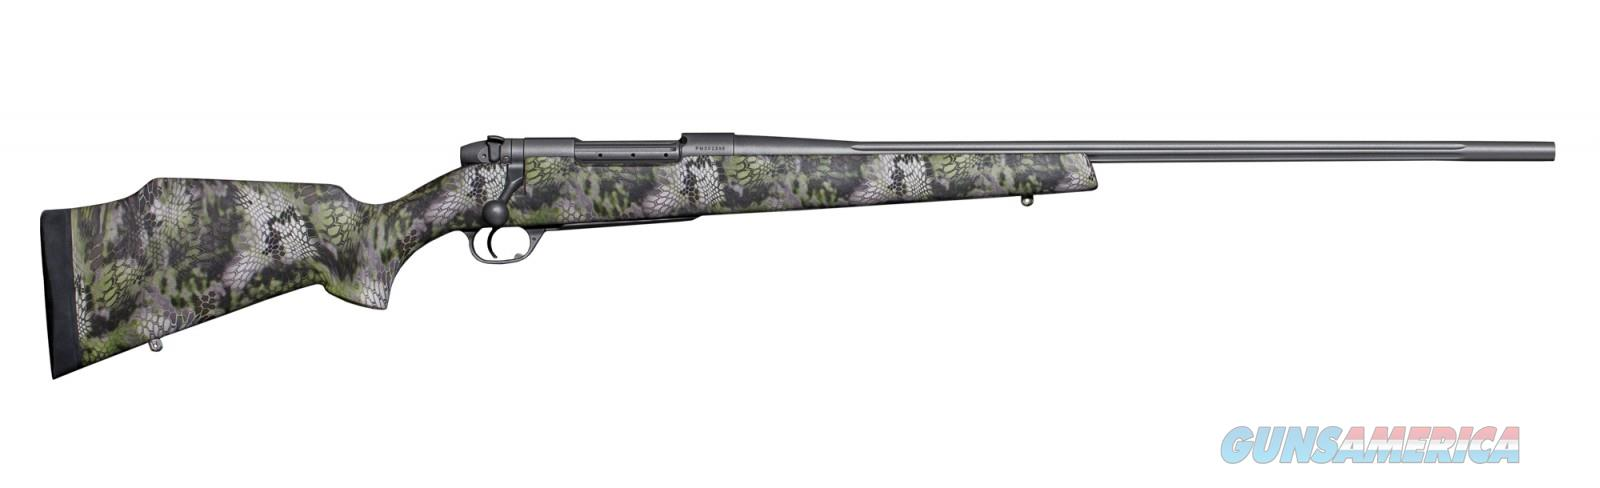 "Weatherby Mark V Altitude .257 Wby Mag 26"" MALM257WR6O  Guns > Rifles > Weatherby Rifles > Sporting"